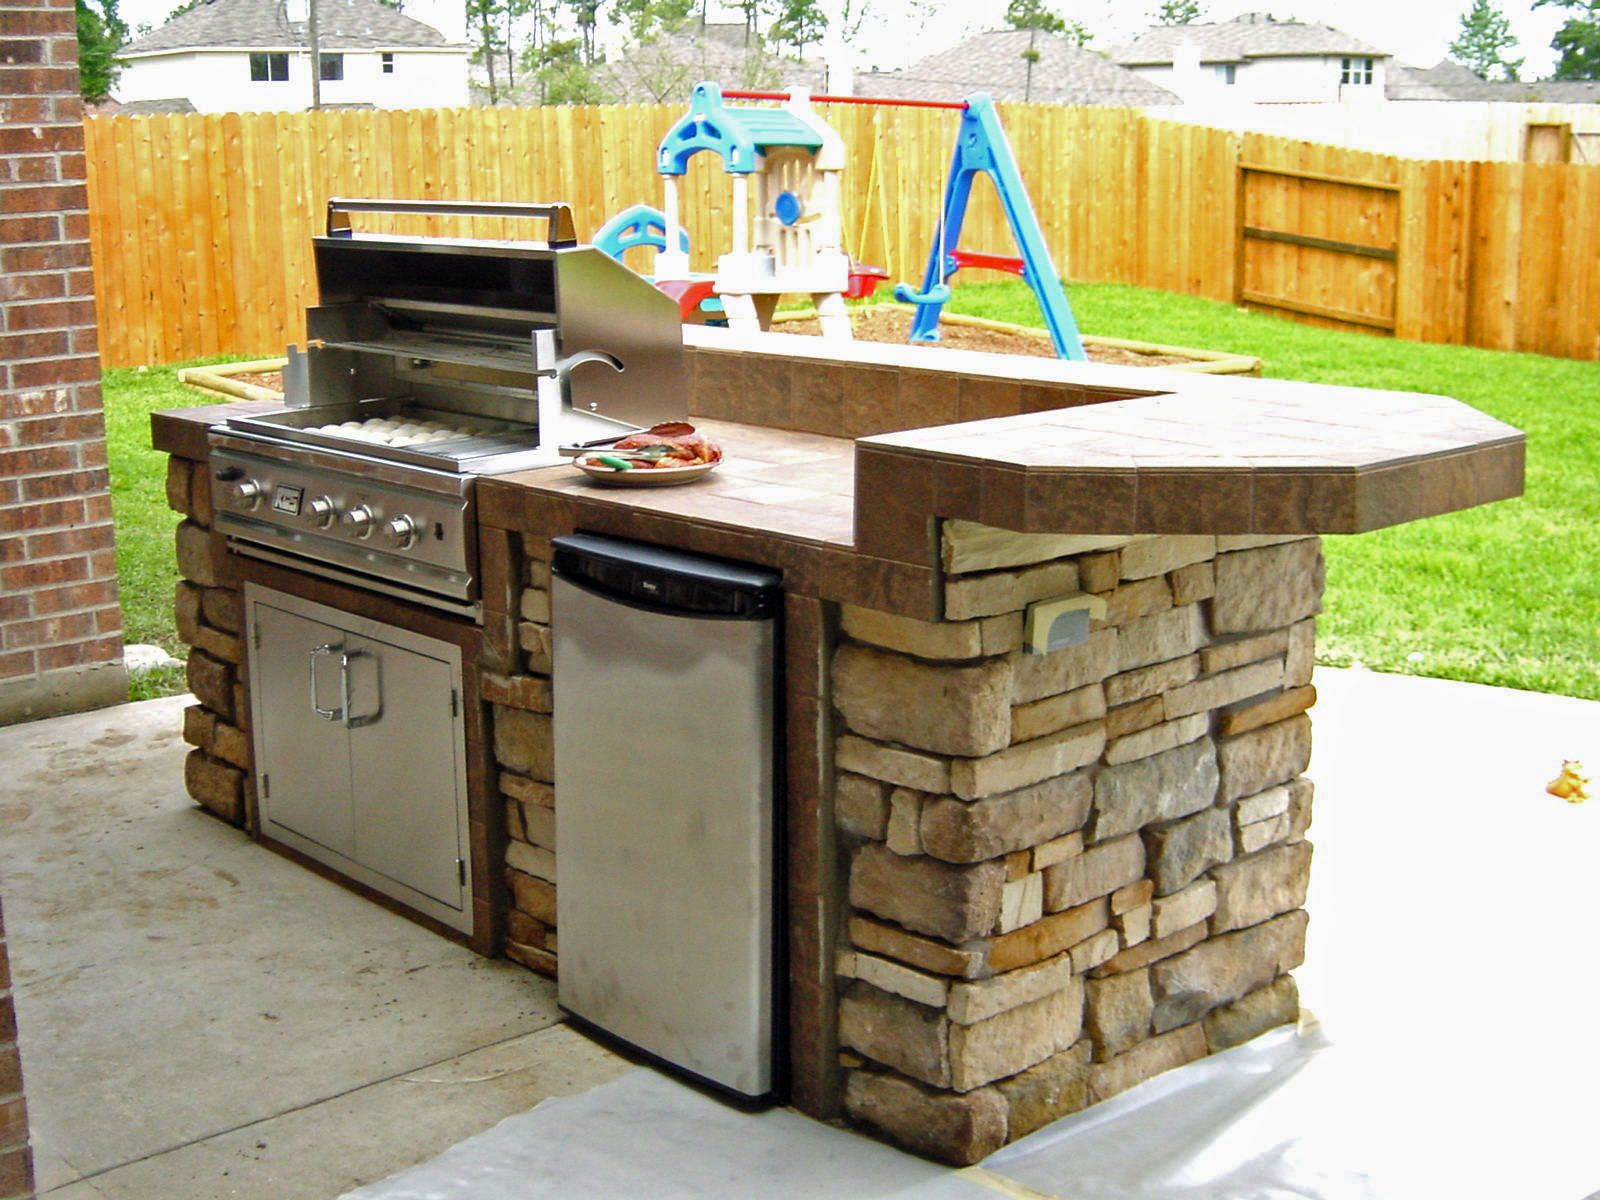 15 Functional and Durable Outdoor Kitchen Ideas for Your